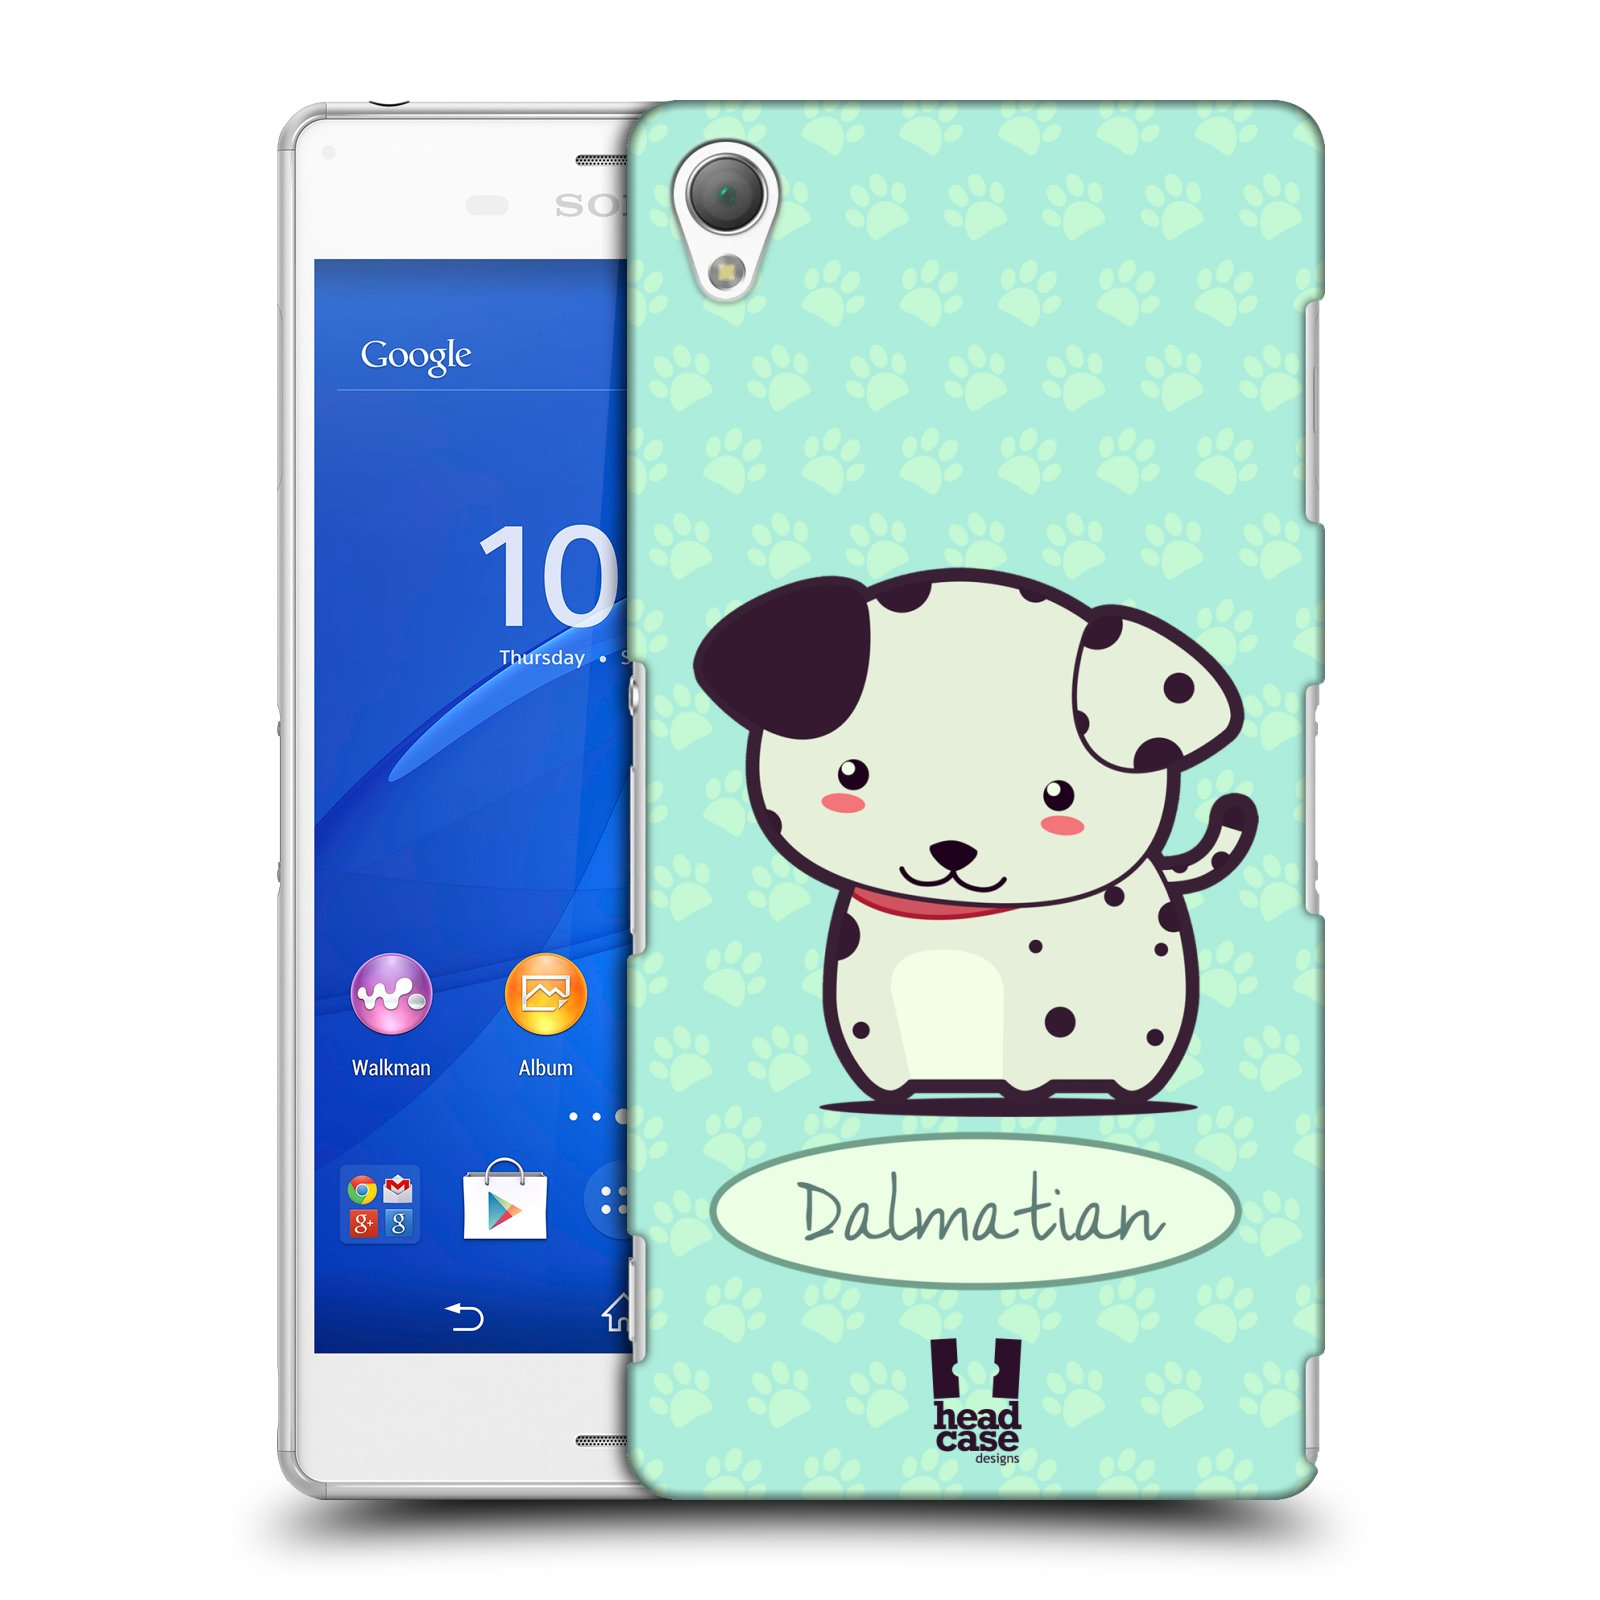 HEAD CASE DESIGNS WONDER DOGS CASE COVER FOR SONY XPERIA Z3